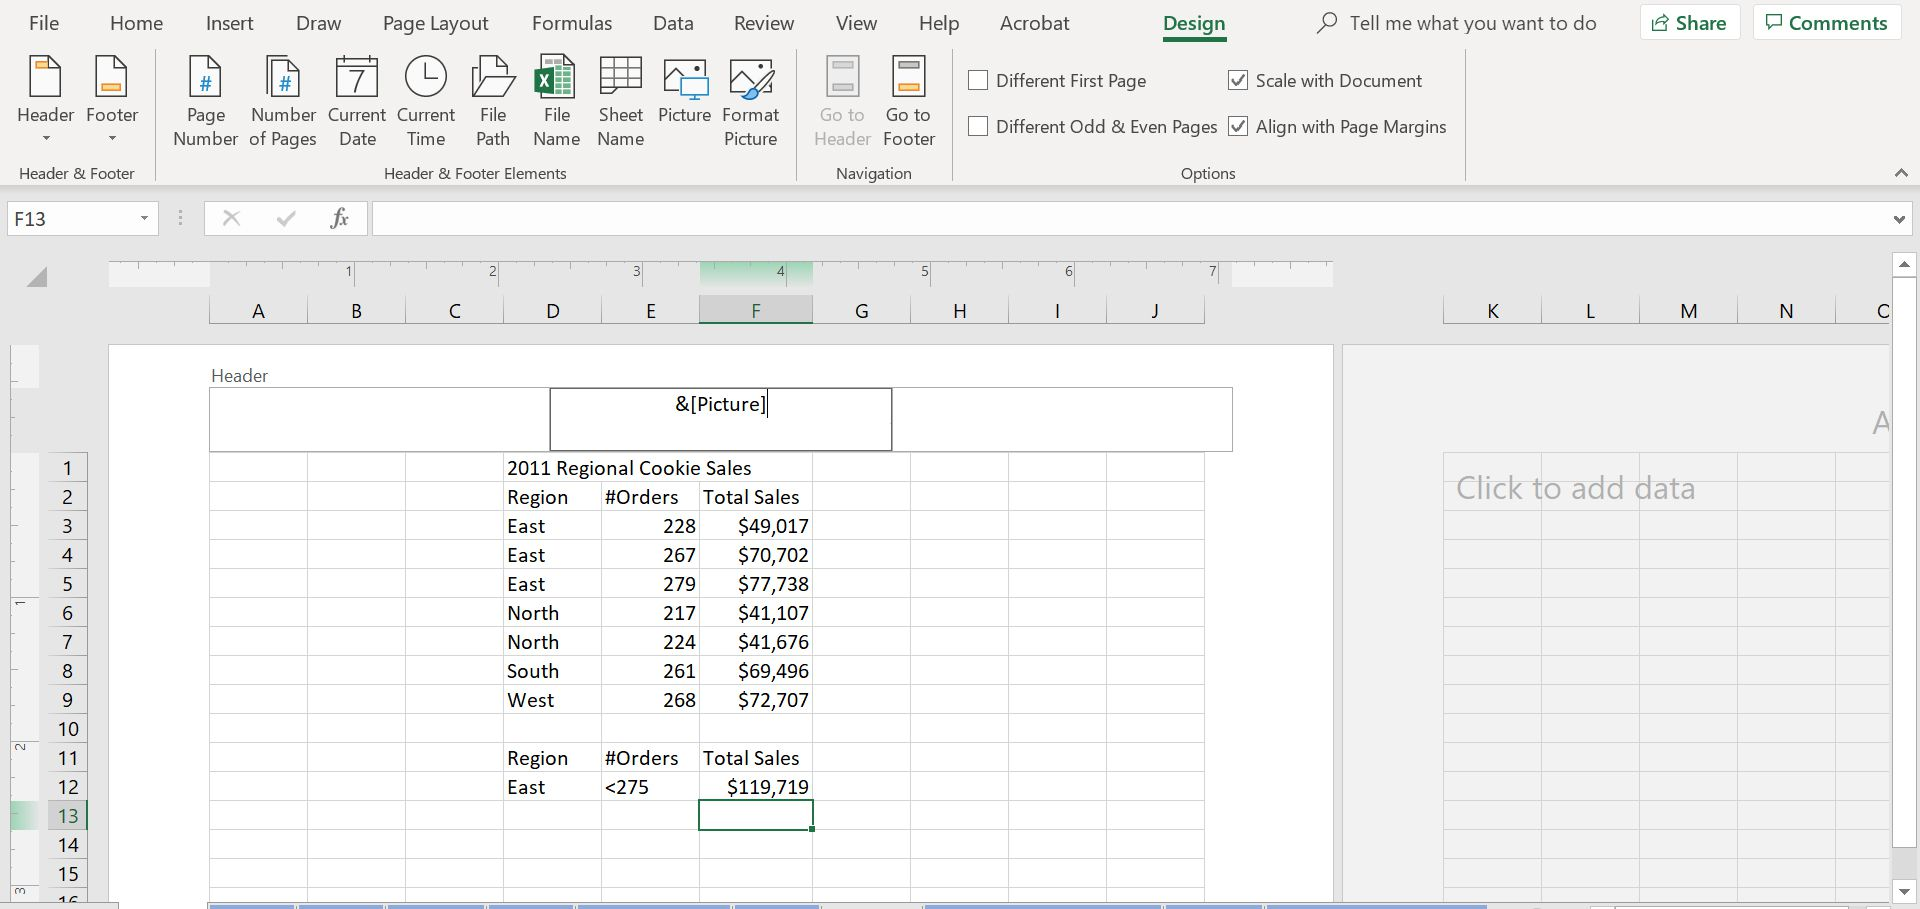 Picture code in header of Excel sheet.